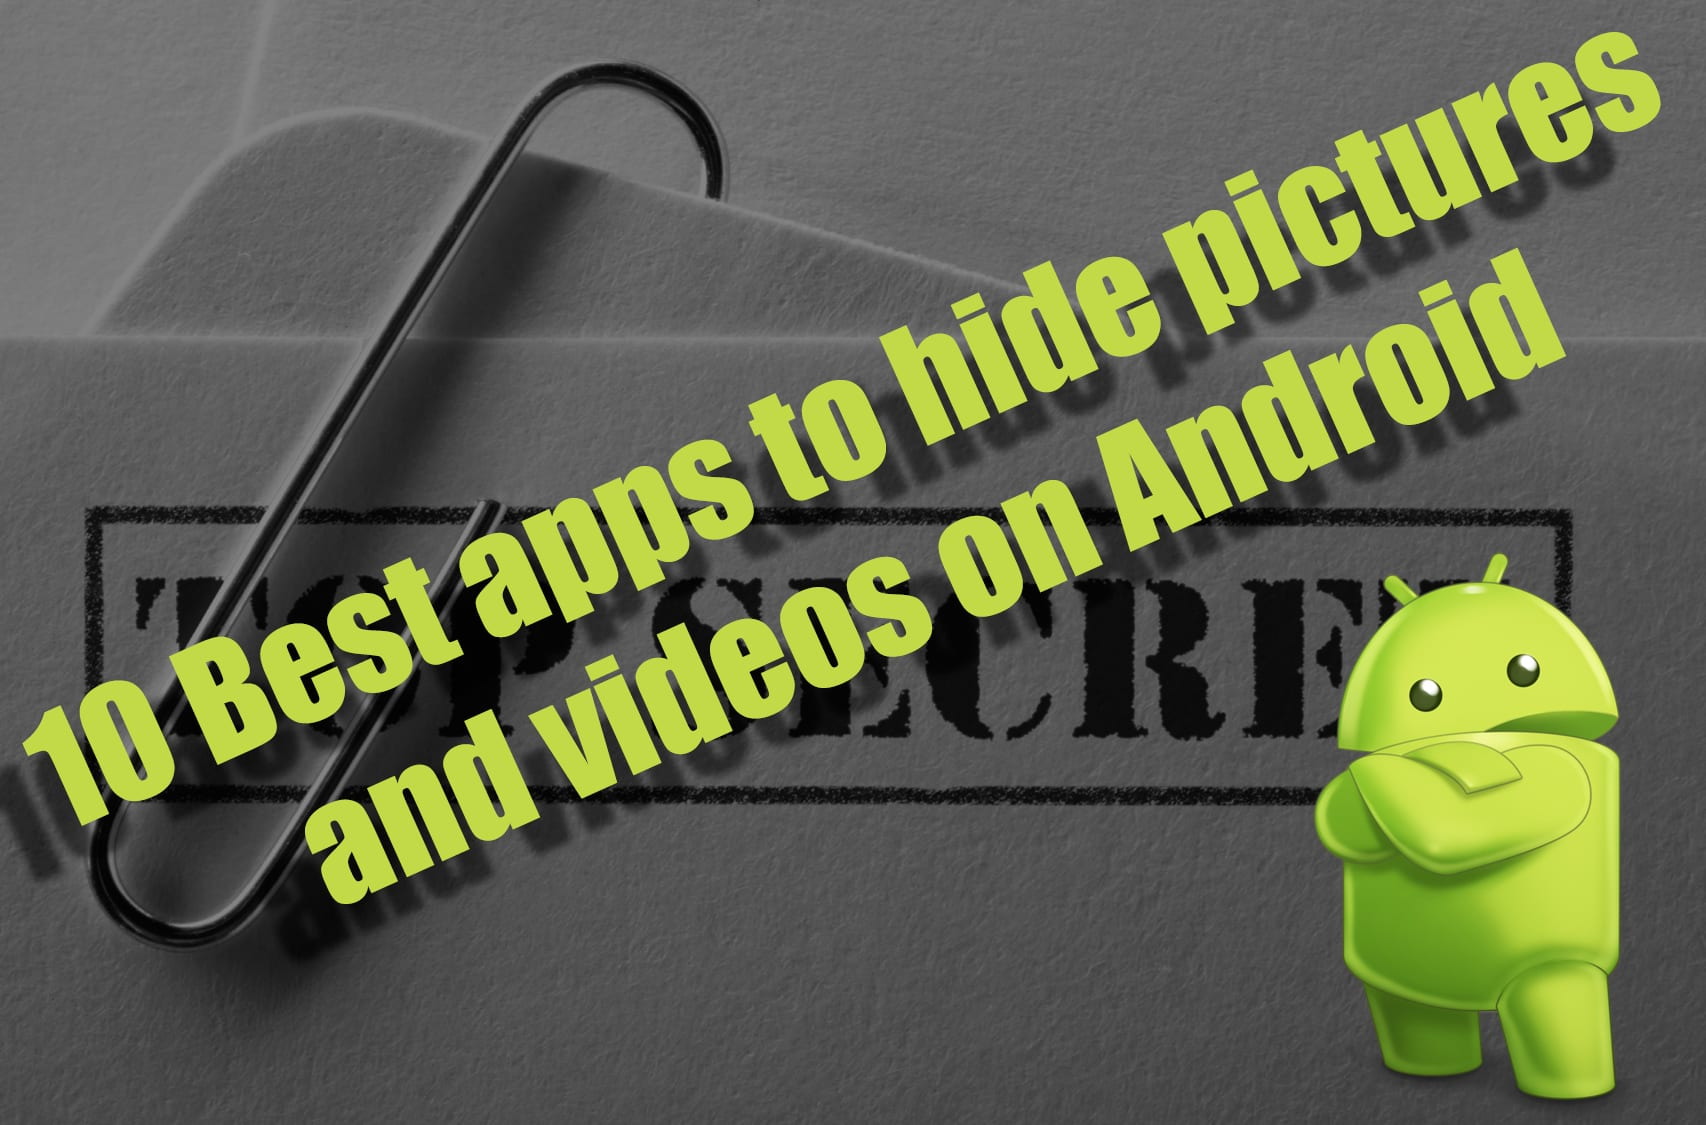 10 best apps to hide pictures and videos onandroid